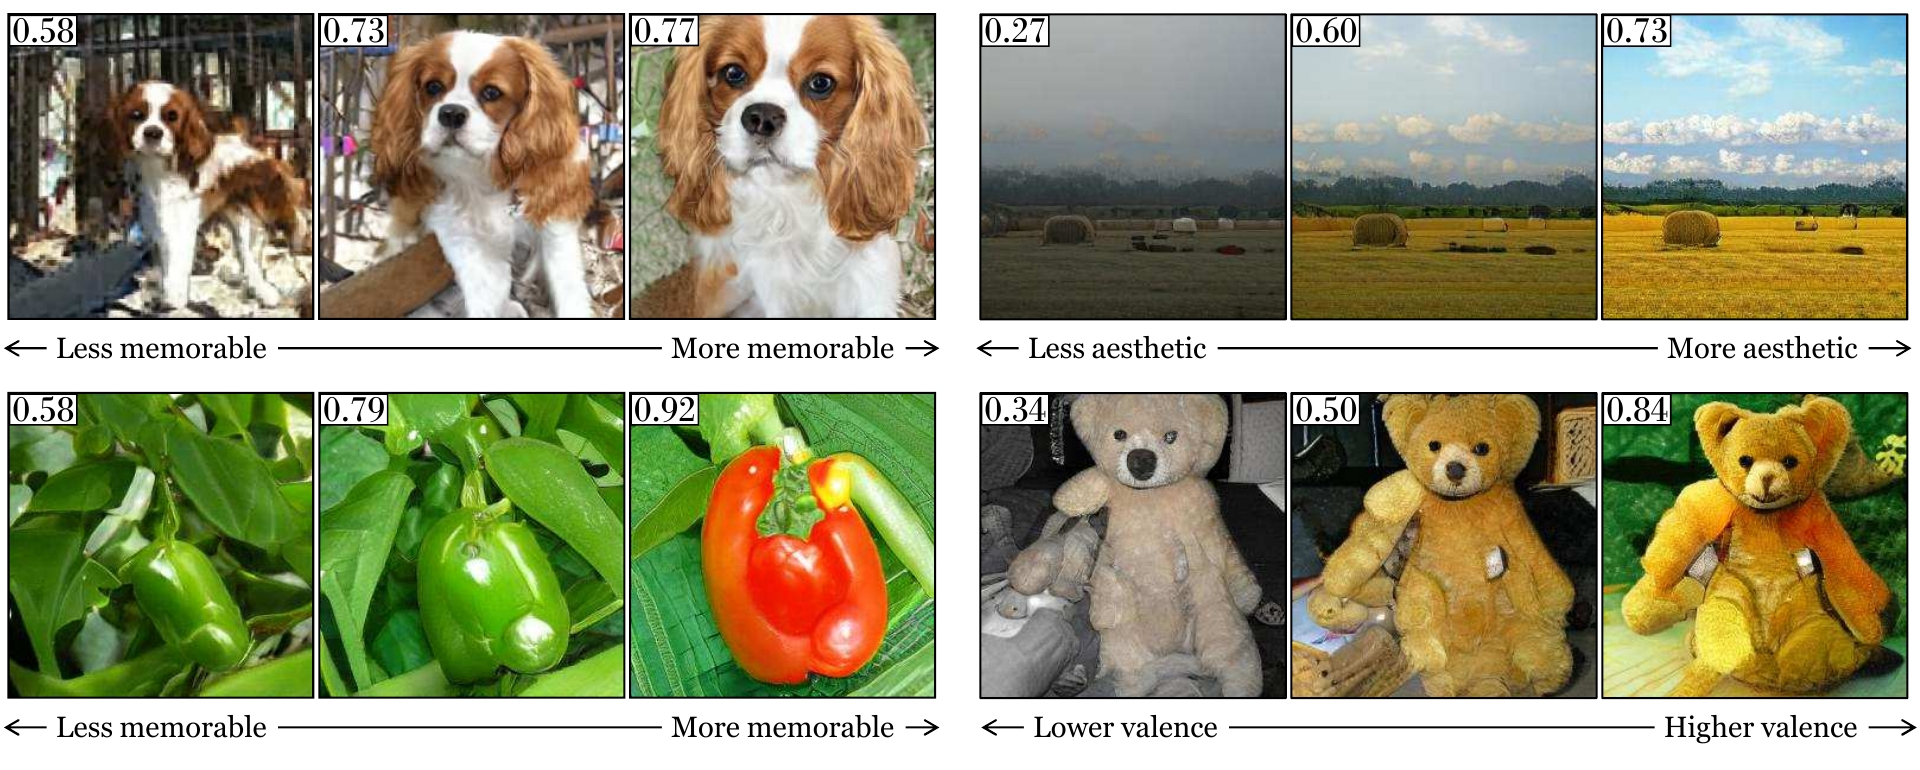 Visualizations produced by the proposed GANalyze framework}. The middle columns represent generated images serving as the original seed. The originals are then modified to be characterized more (right) or less (left) by a given property of interest (memorability, aesthetics, or emotional valence). The images' respective property scores are presented in their top left corner.